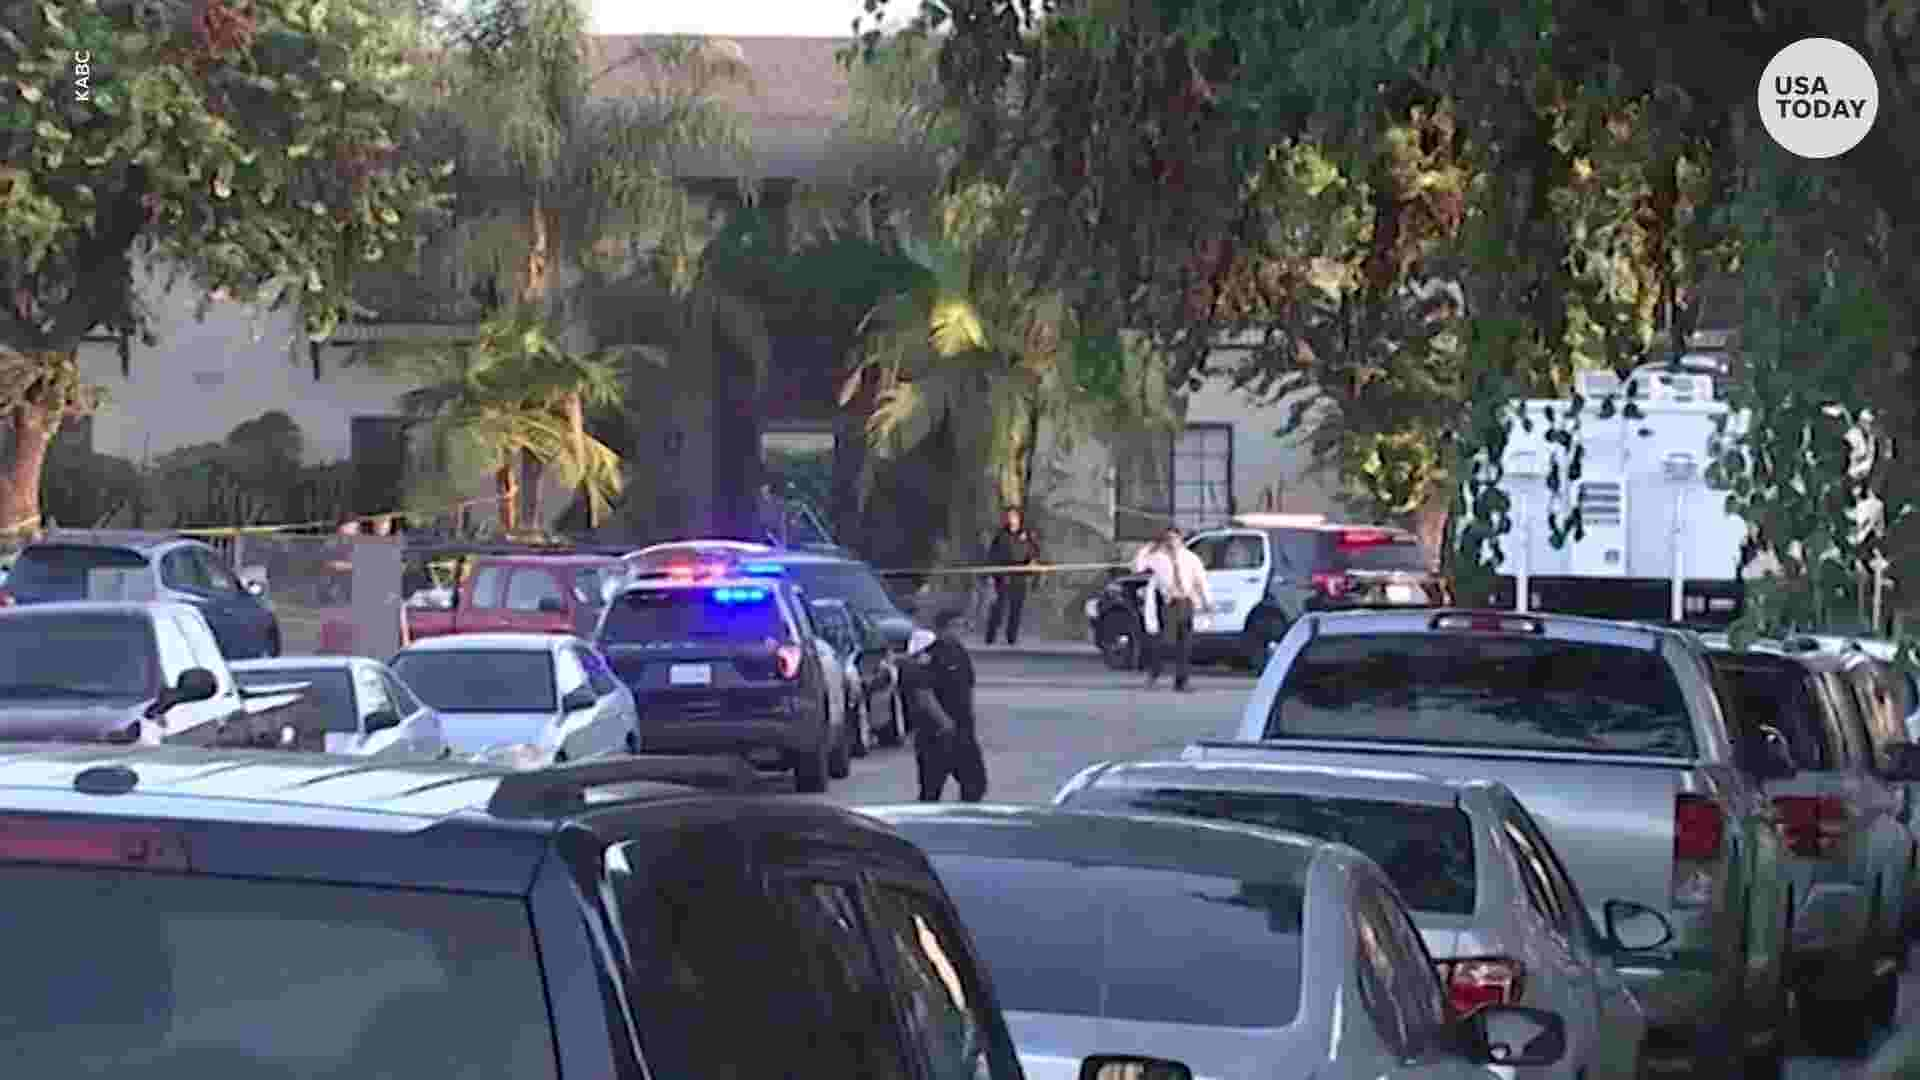 4 dead, 2 injured after man goes on stabbing rampage in California